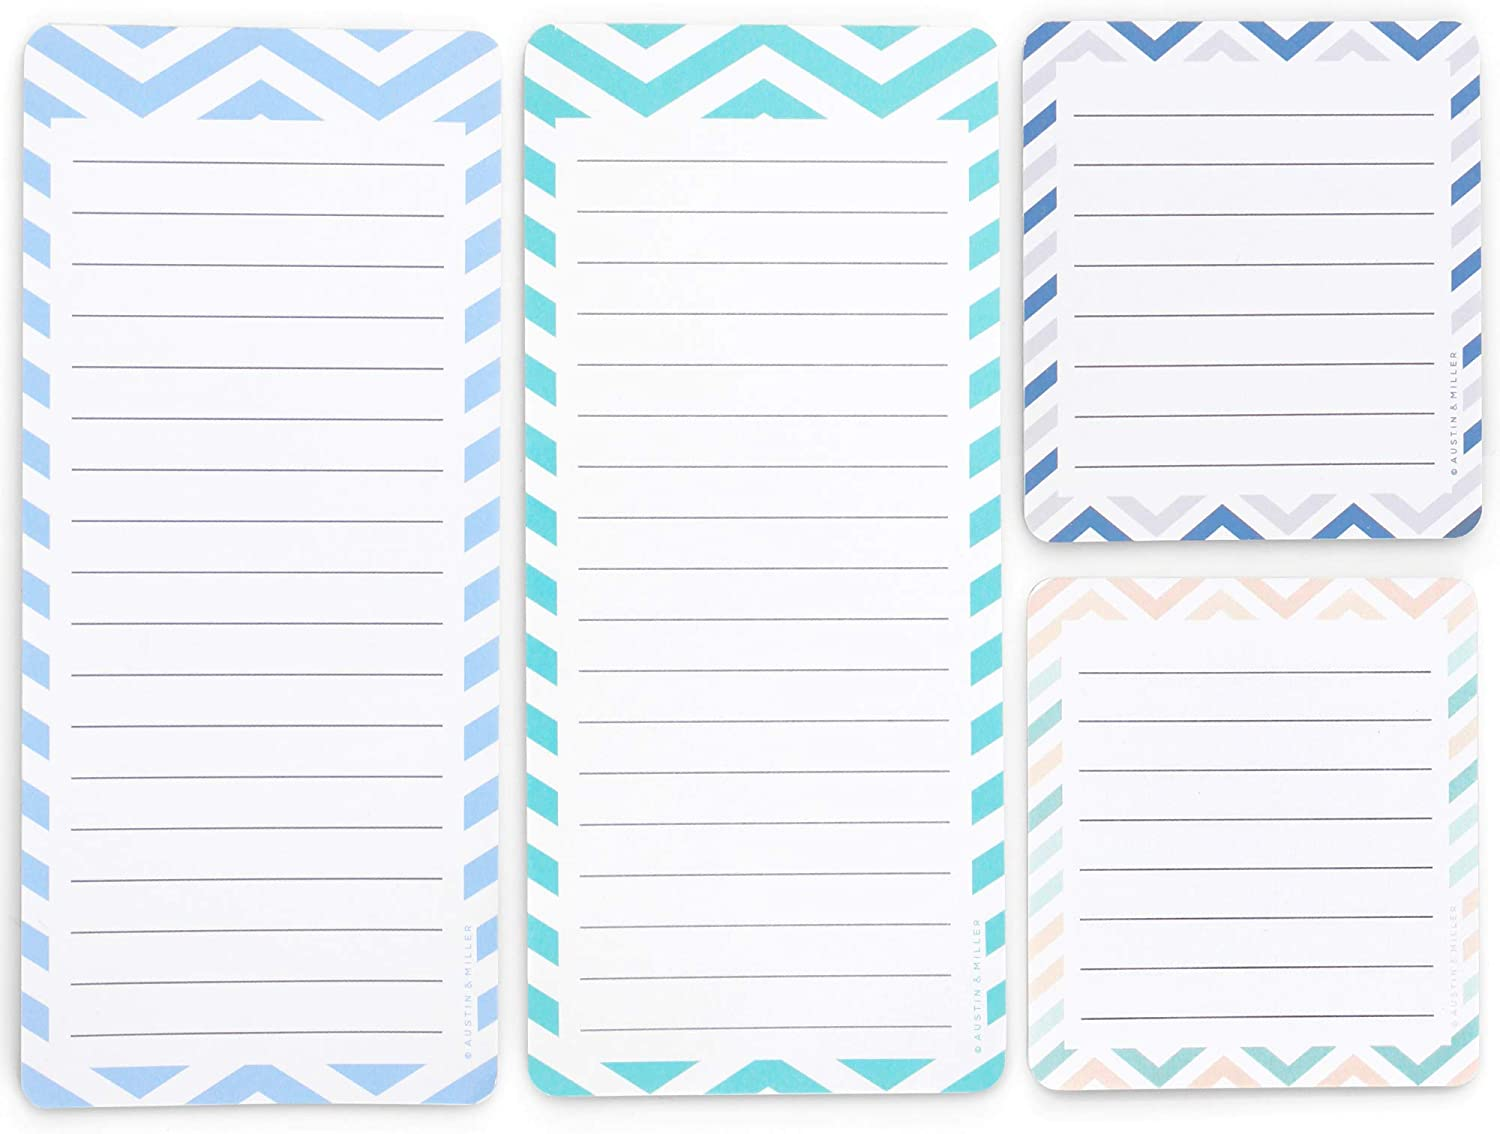 Magnetic Notepads in Large and Small Sizes for Fridge, Grocery Shopping, To-Do List Pad and Reminders (4 pack)